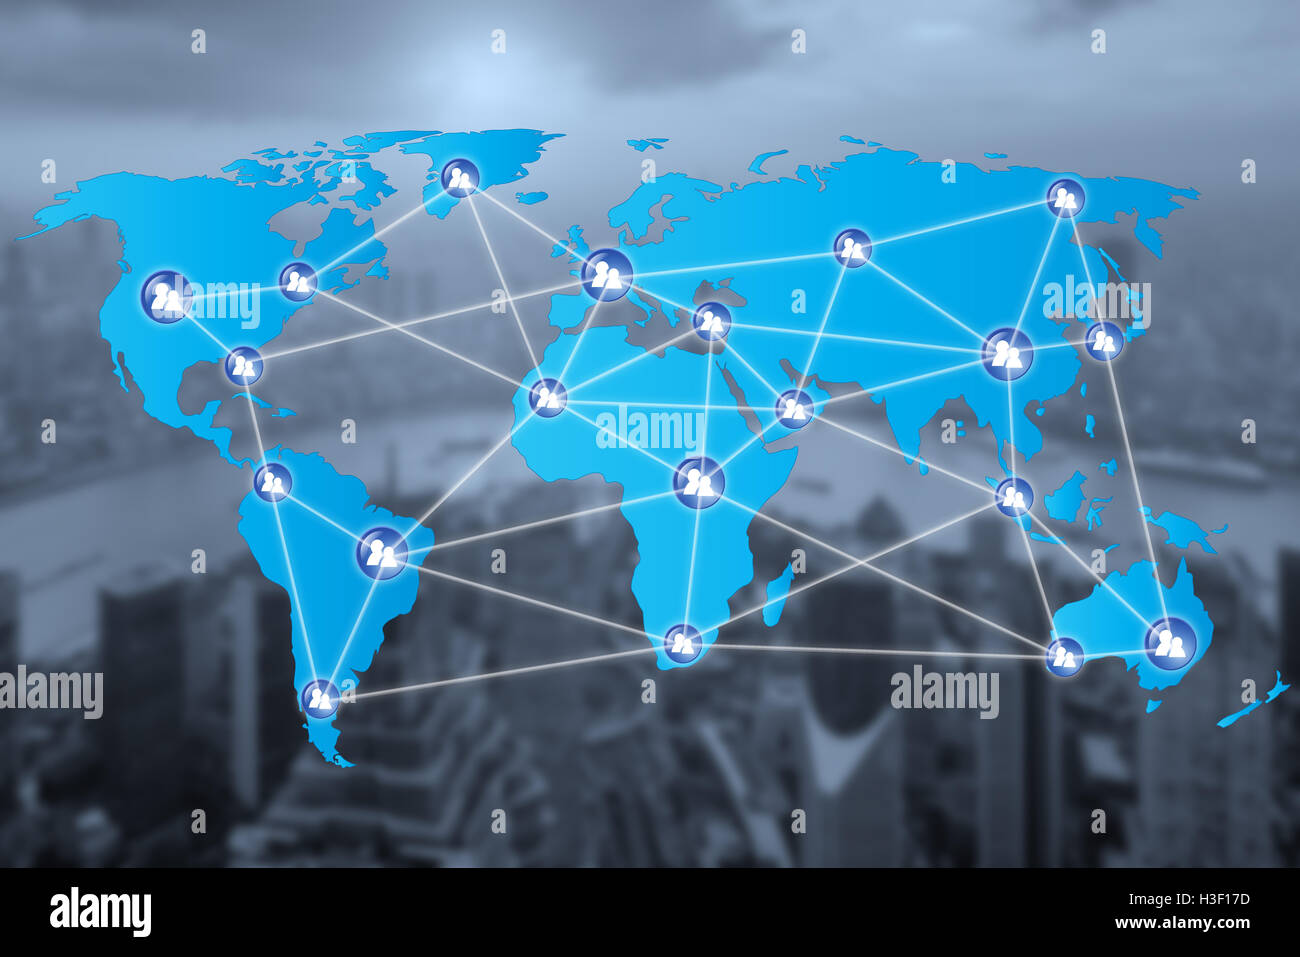 People network connection icons with World map connectionand blur city. Network work connections concept - Stock Image